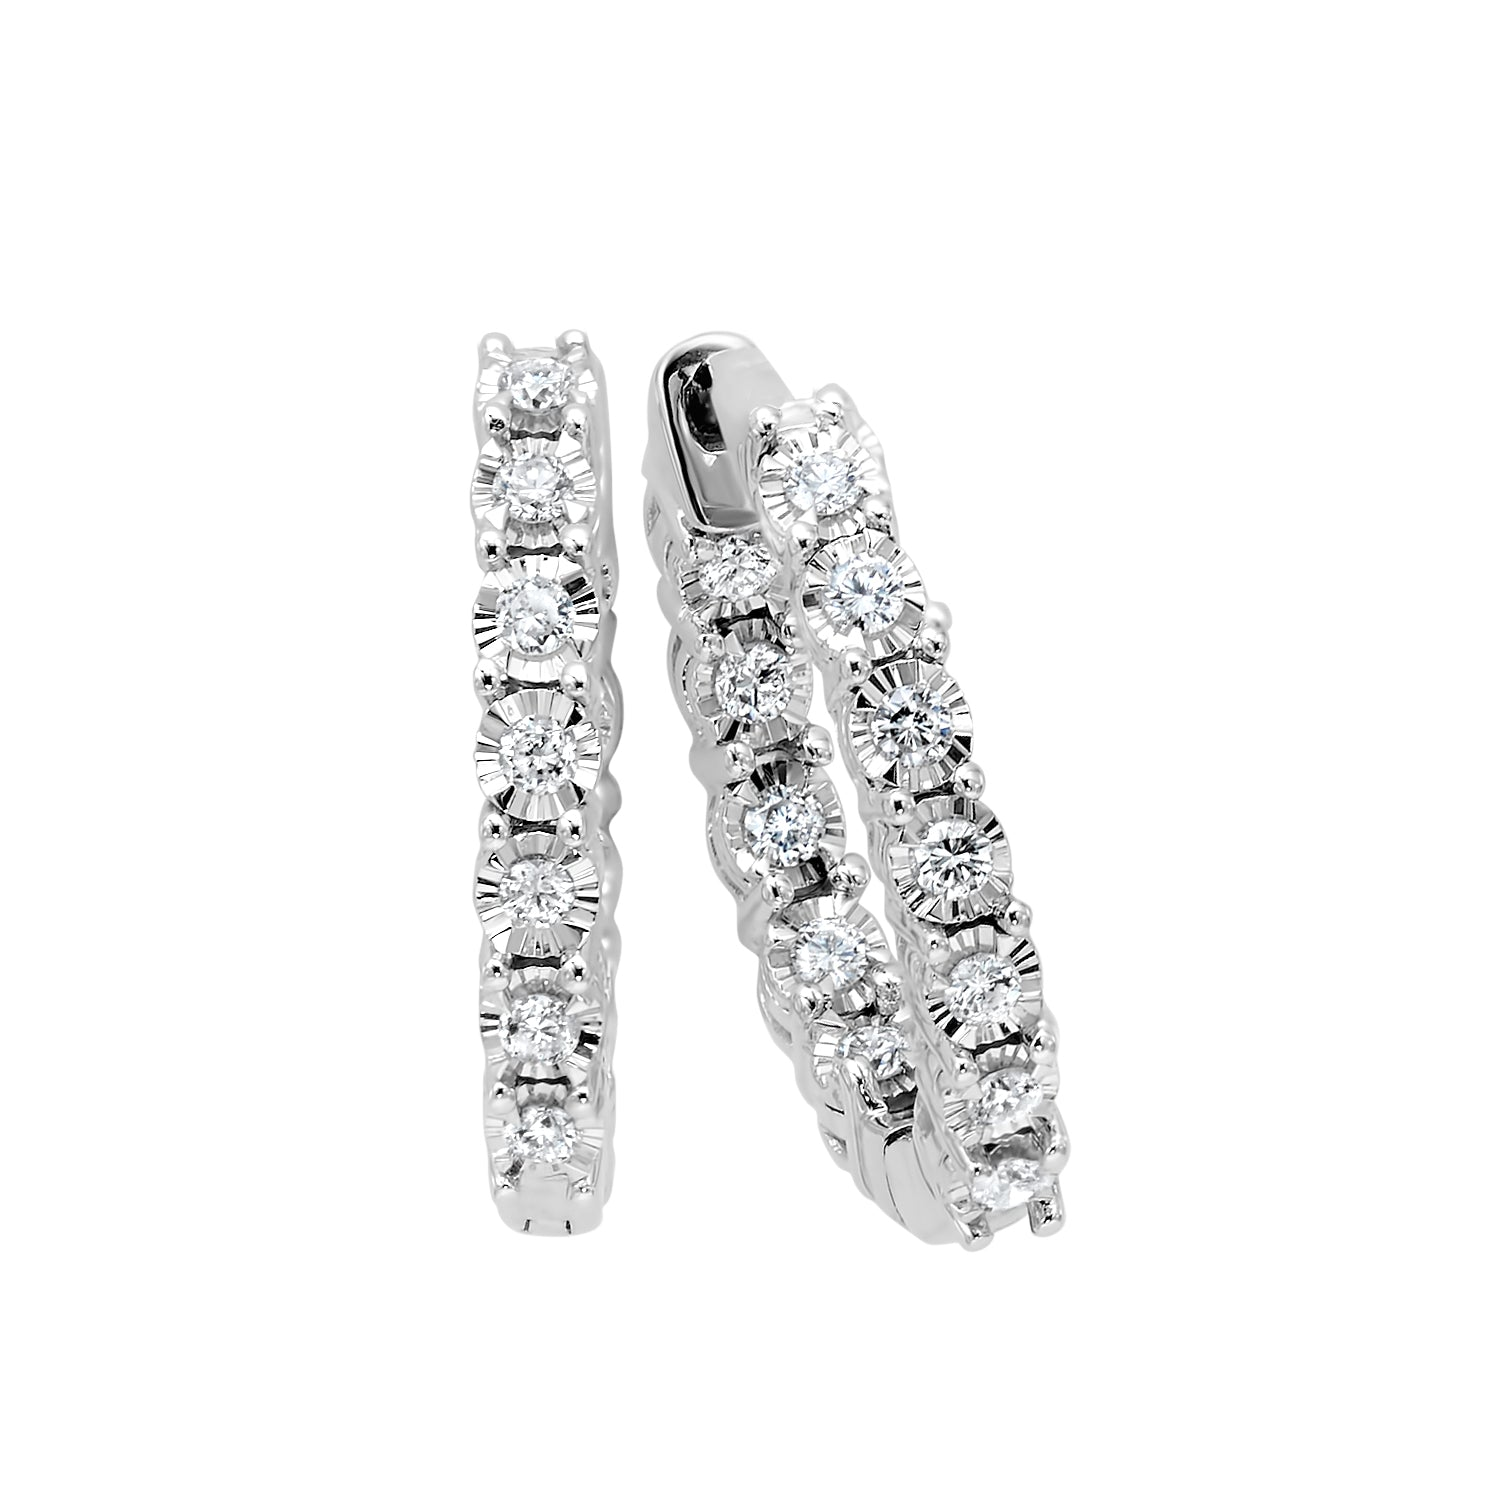 14K White Gold 1/2 ct Diamond Hoop Earrings